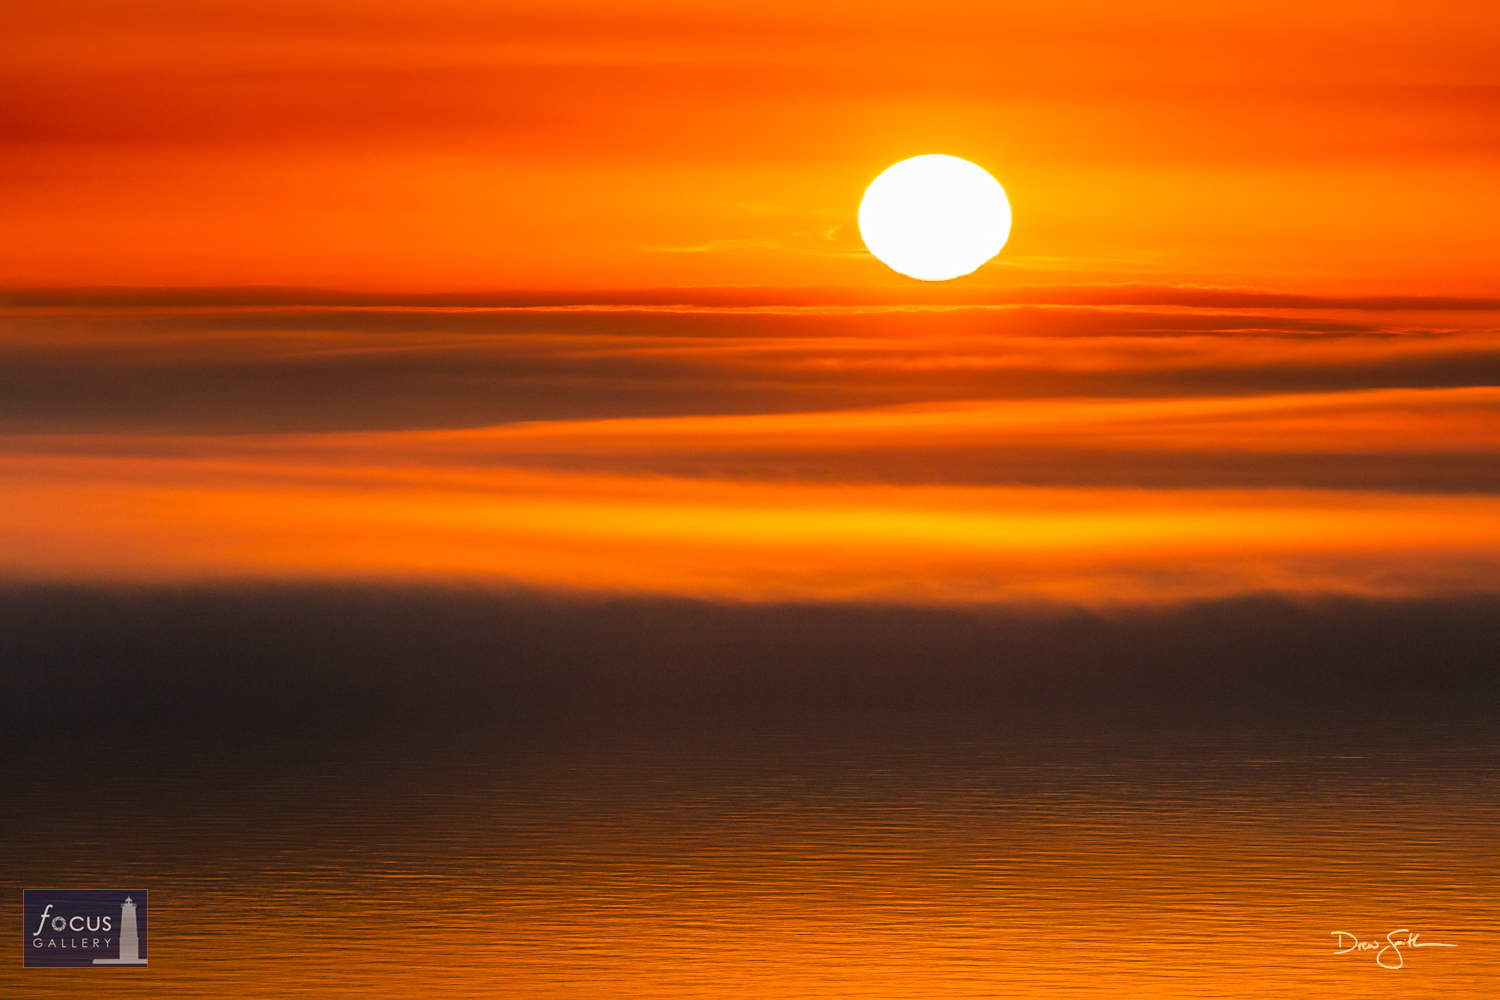 Photo © Drew Smith A layer cake sunset taken from atop the bluffs north of Frankfort.  Frosted in warm orange hues, the sun...